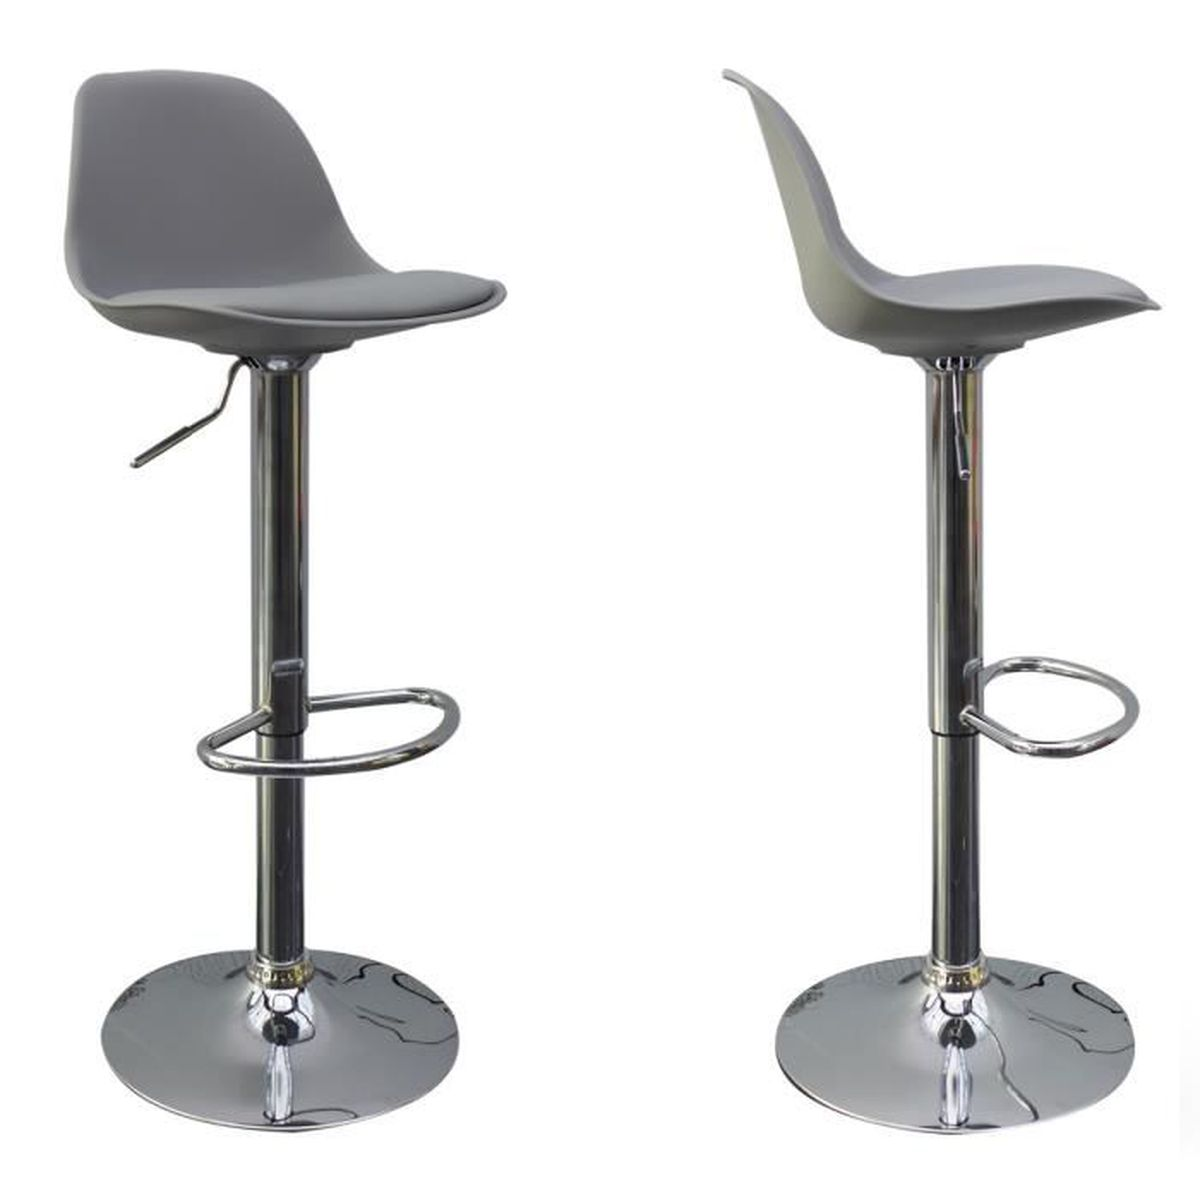 lot de 2 tabourets de bar design bobba couleur gris achat vente tabouret cdiscount. Black Bedroom Furniture Sets. Home Design Ideas